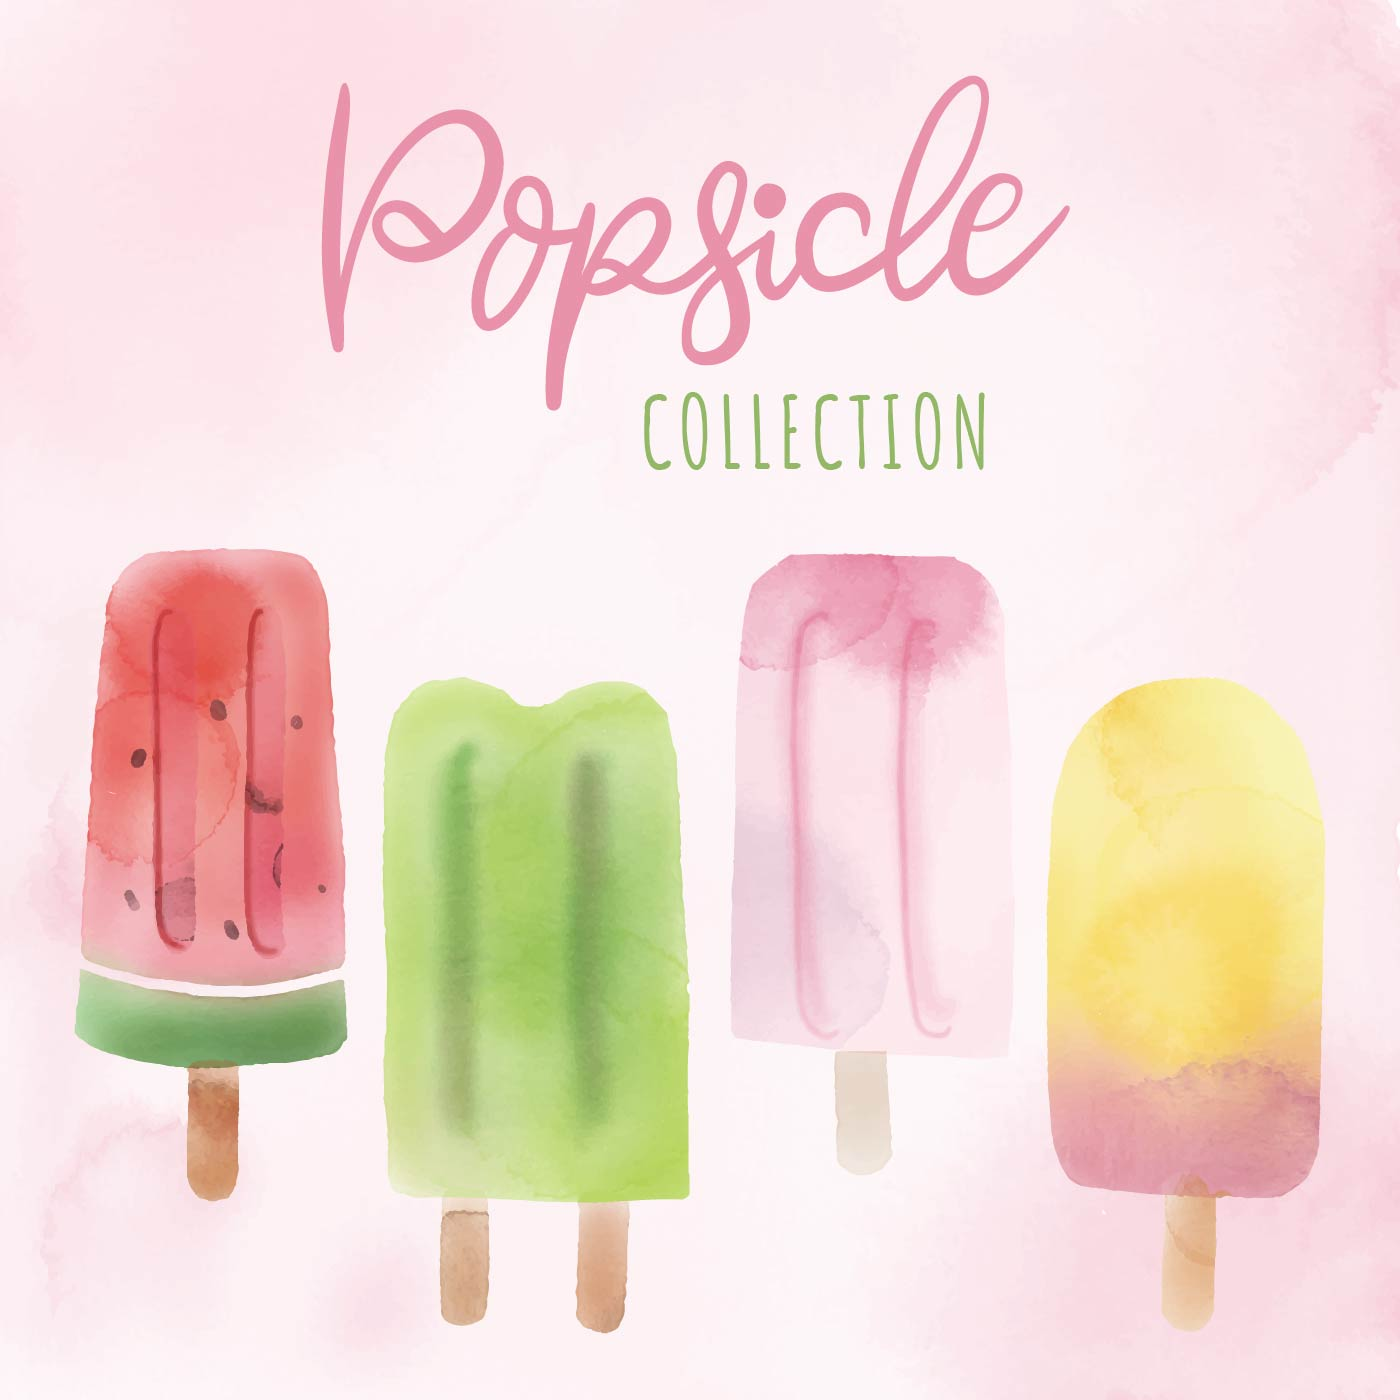 Fresh Ice Cream Stick In Summer Wallpaper Vector: Summer Popsicle Watercolor Vector Collection